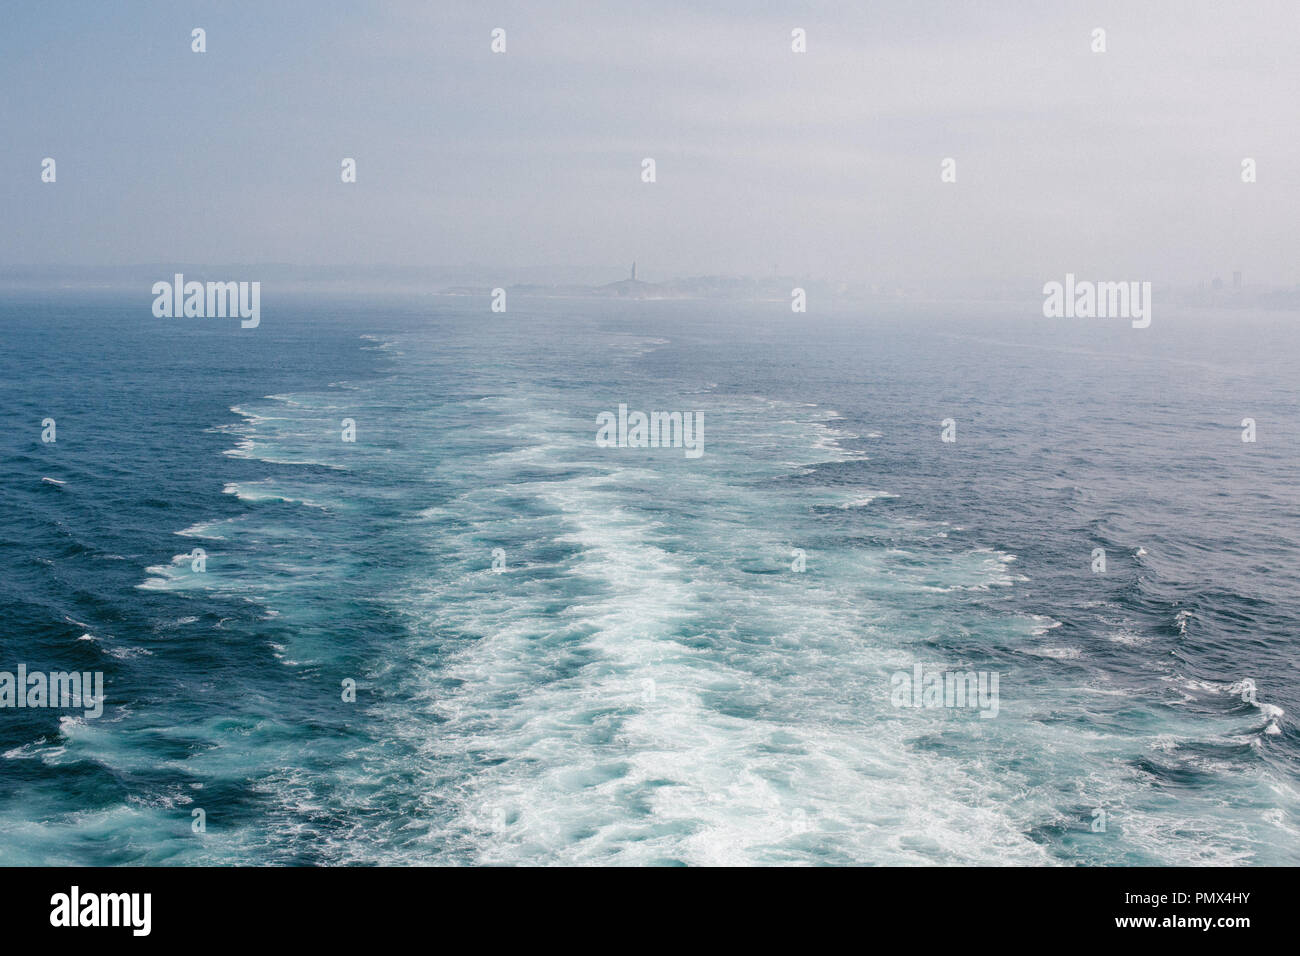 The wake behind a large cruise ship as it leaves port into open water (sea, ocean) with the distant land in the background - Stock Image